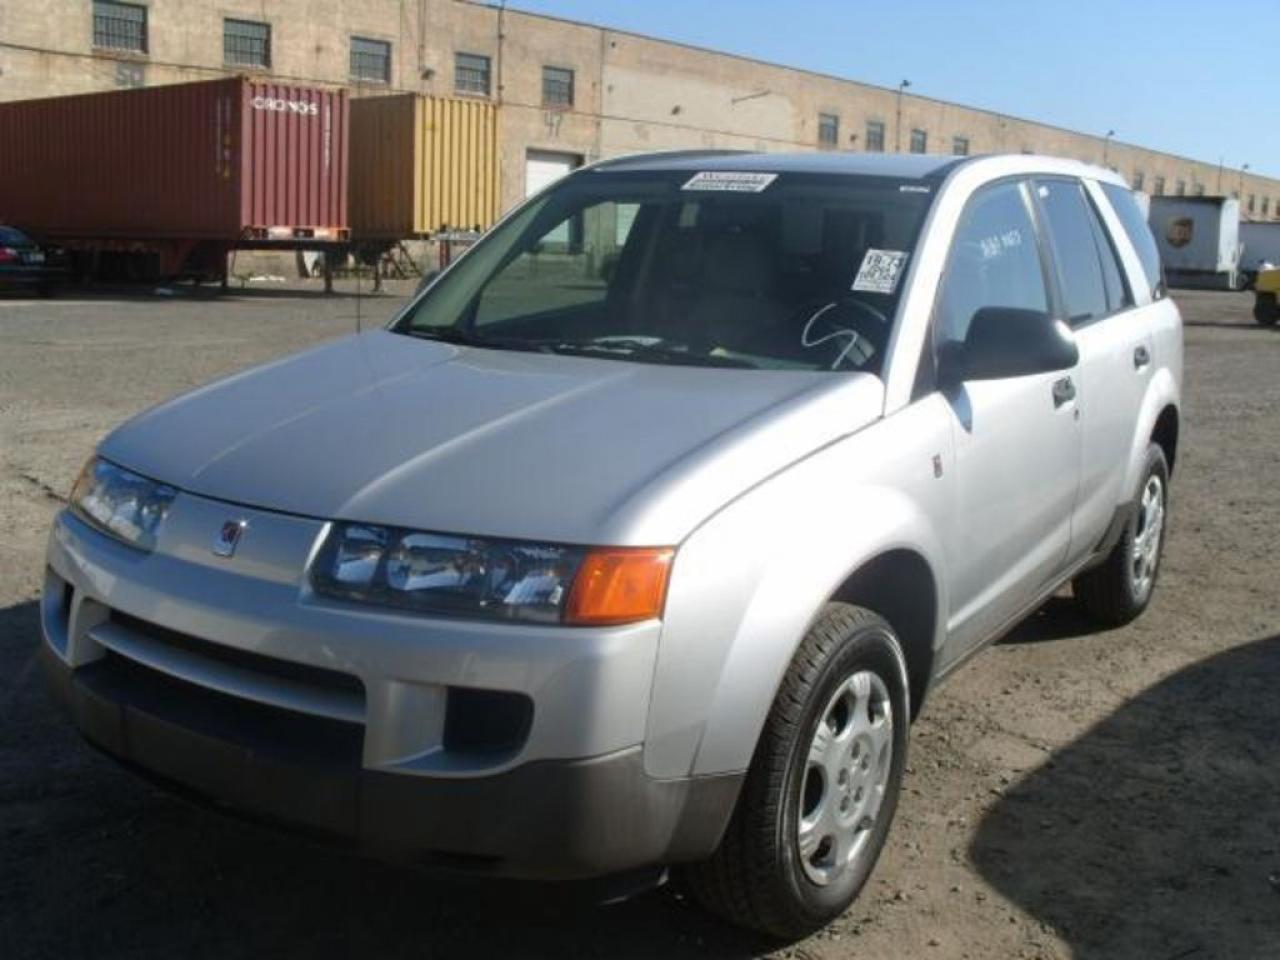 2003 Saturn Vue Information And Photos Zombiedrive Automatic Transmission 800 1024 1280 1600 Origin